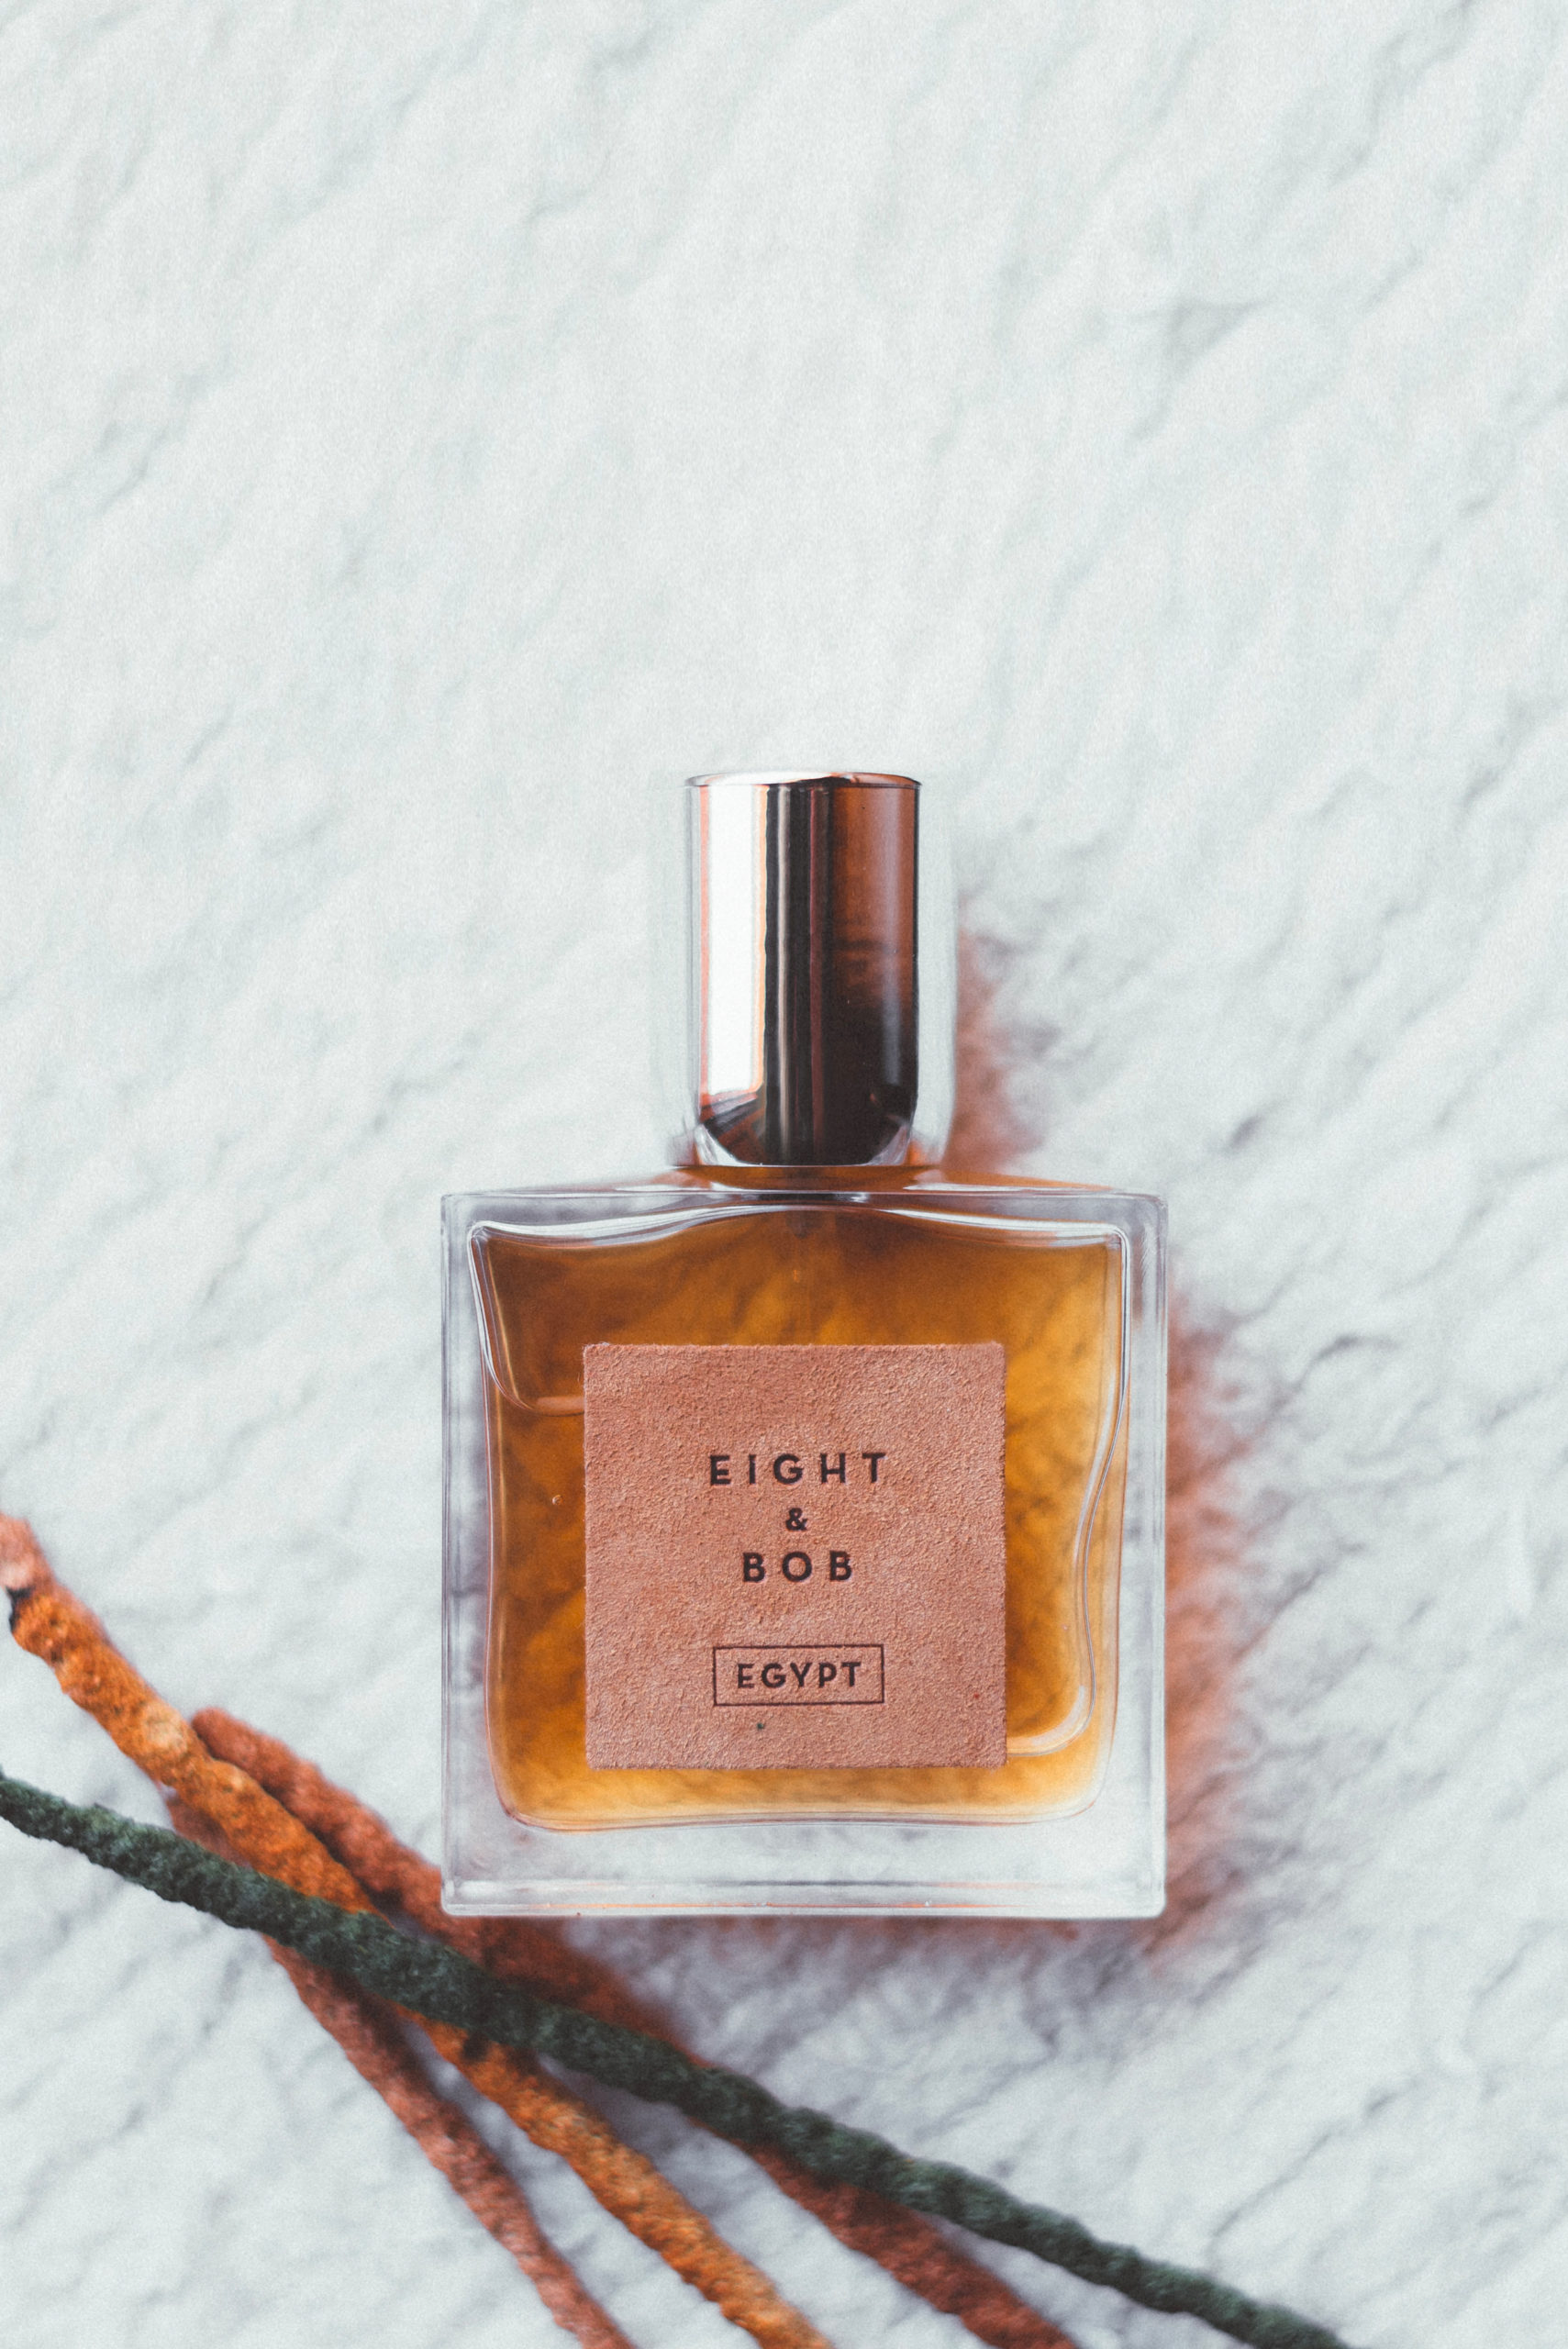 Eight & Bob - Egypt - 100 mL